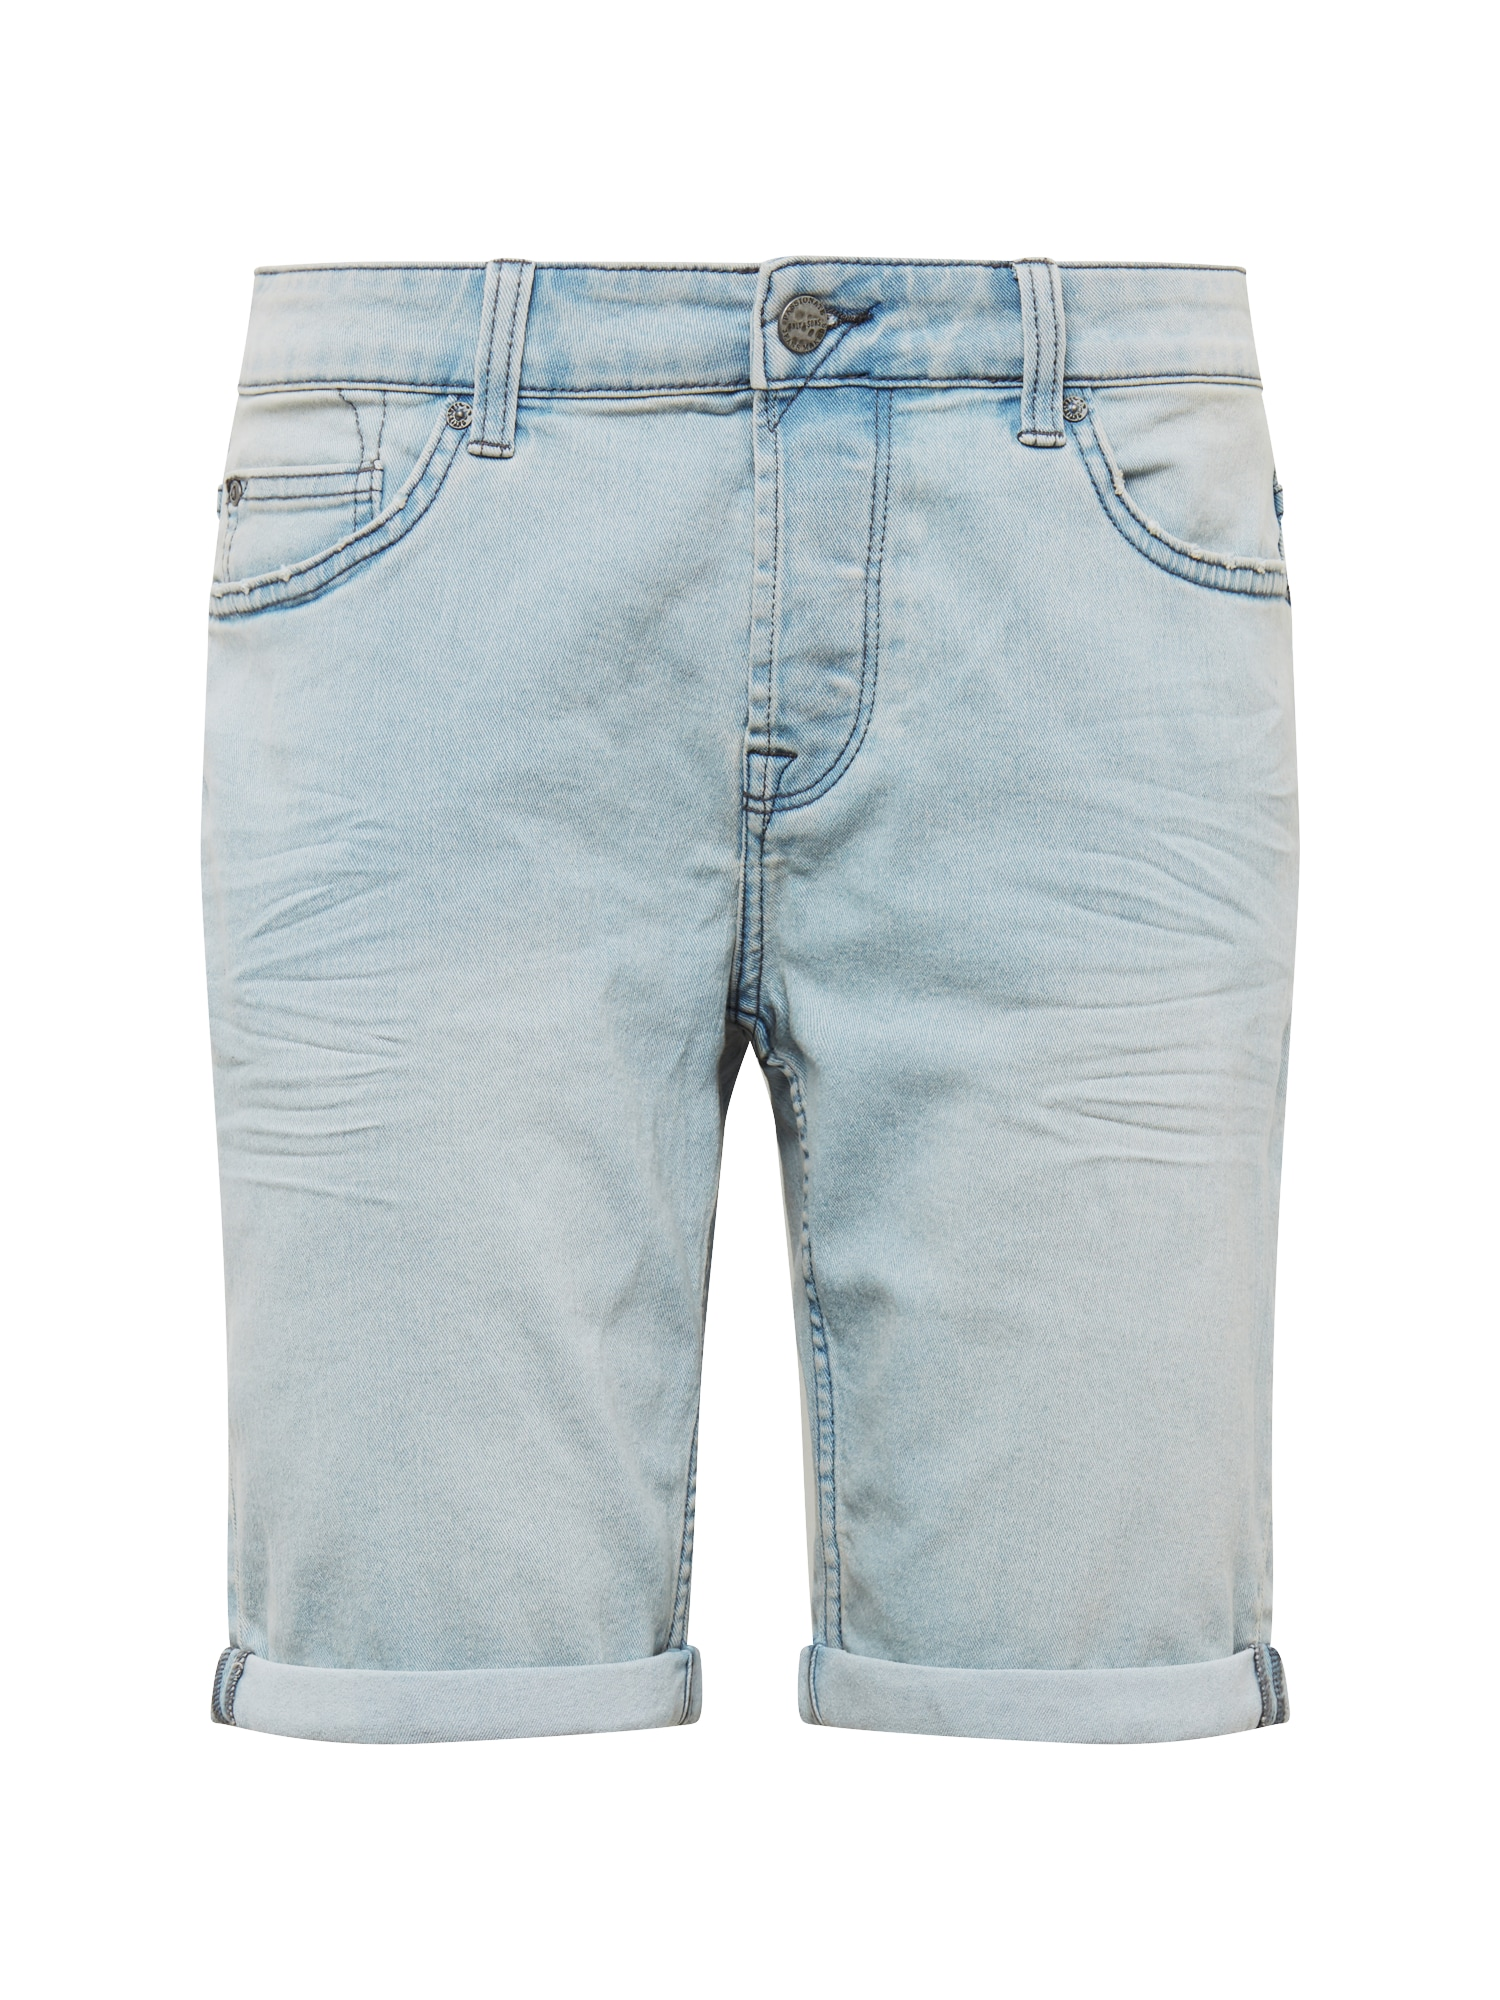 Džíny PLY LIGHT BLUE blue denim Only & Sons